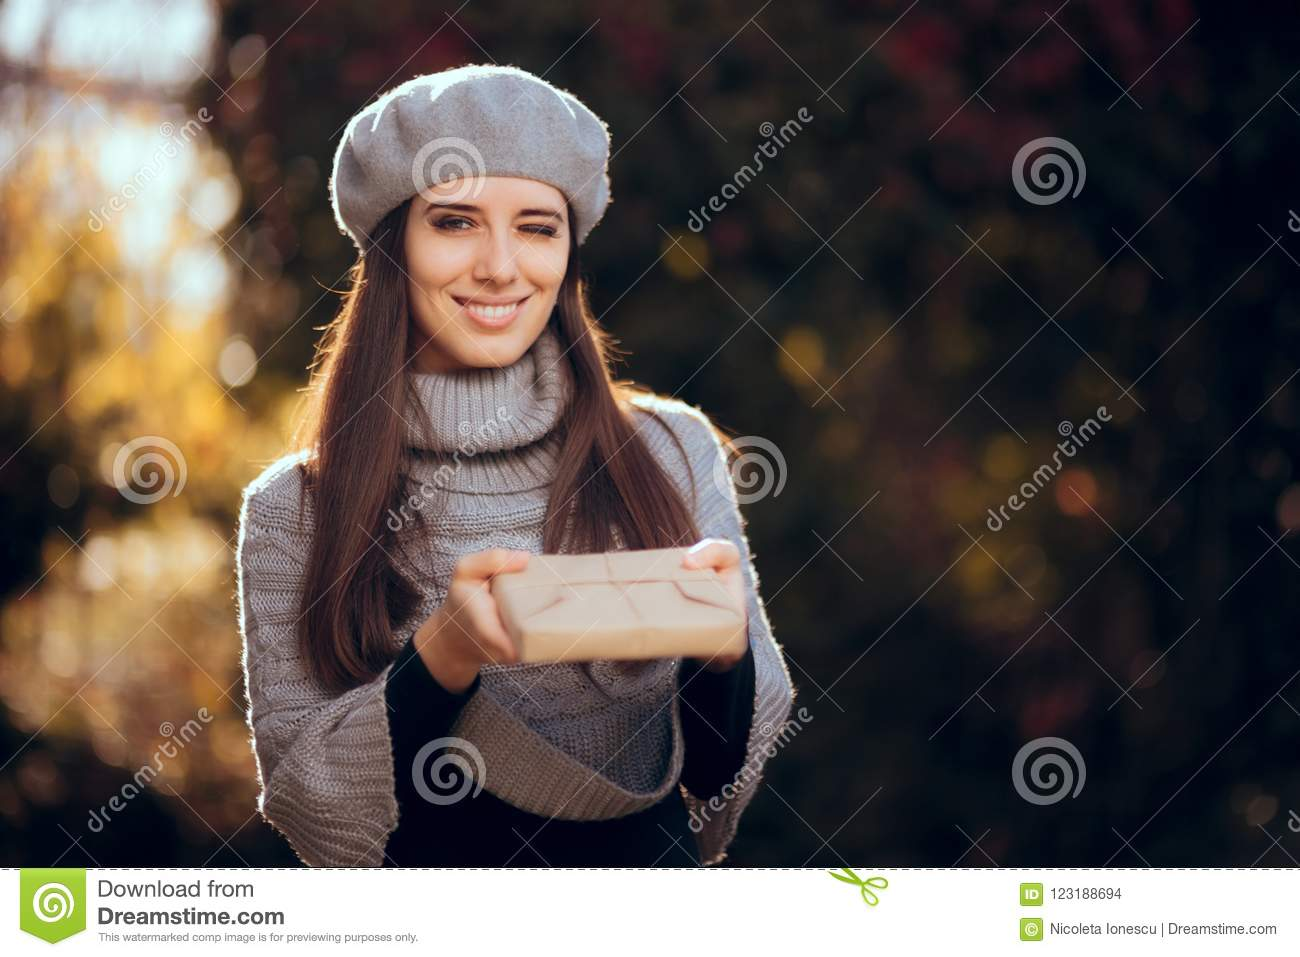 Retro Chic Girl with Beret Holding a Paper Wrapped Package